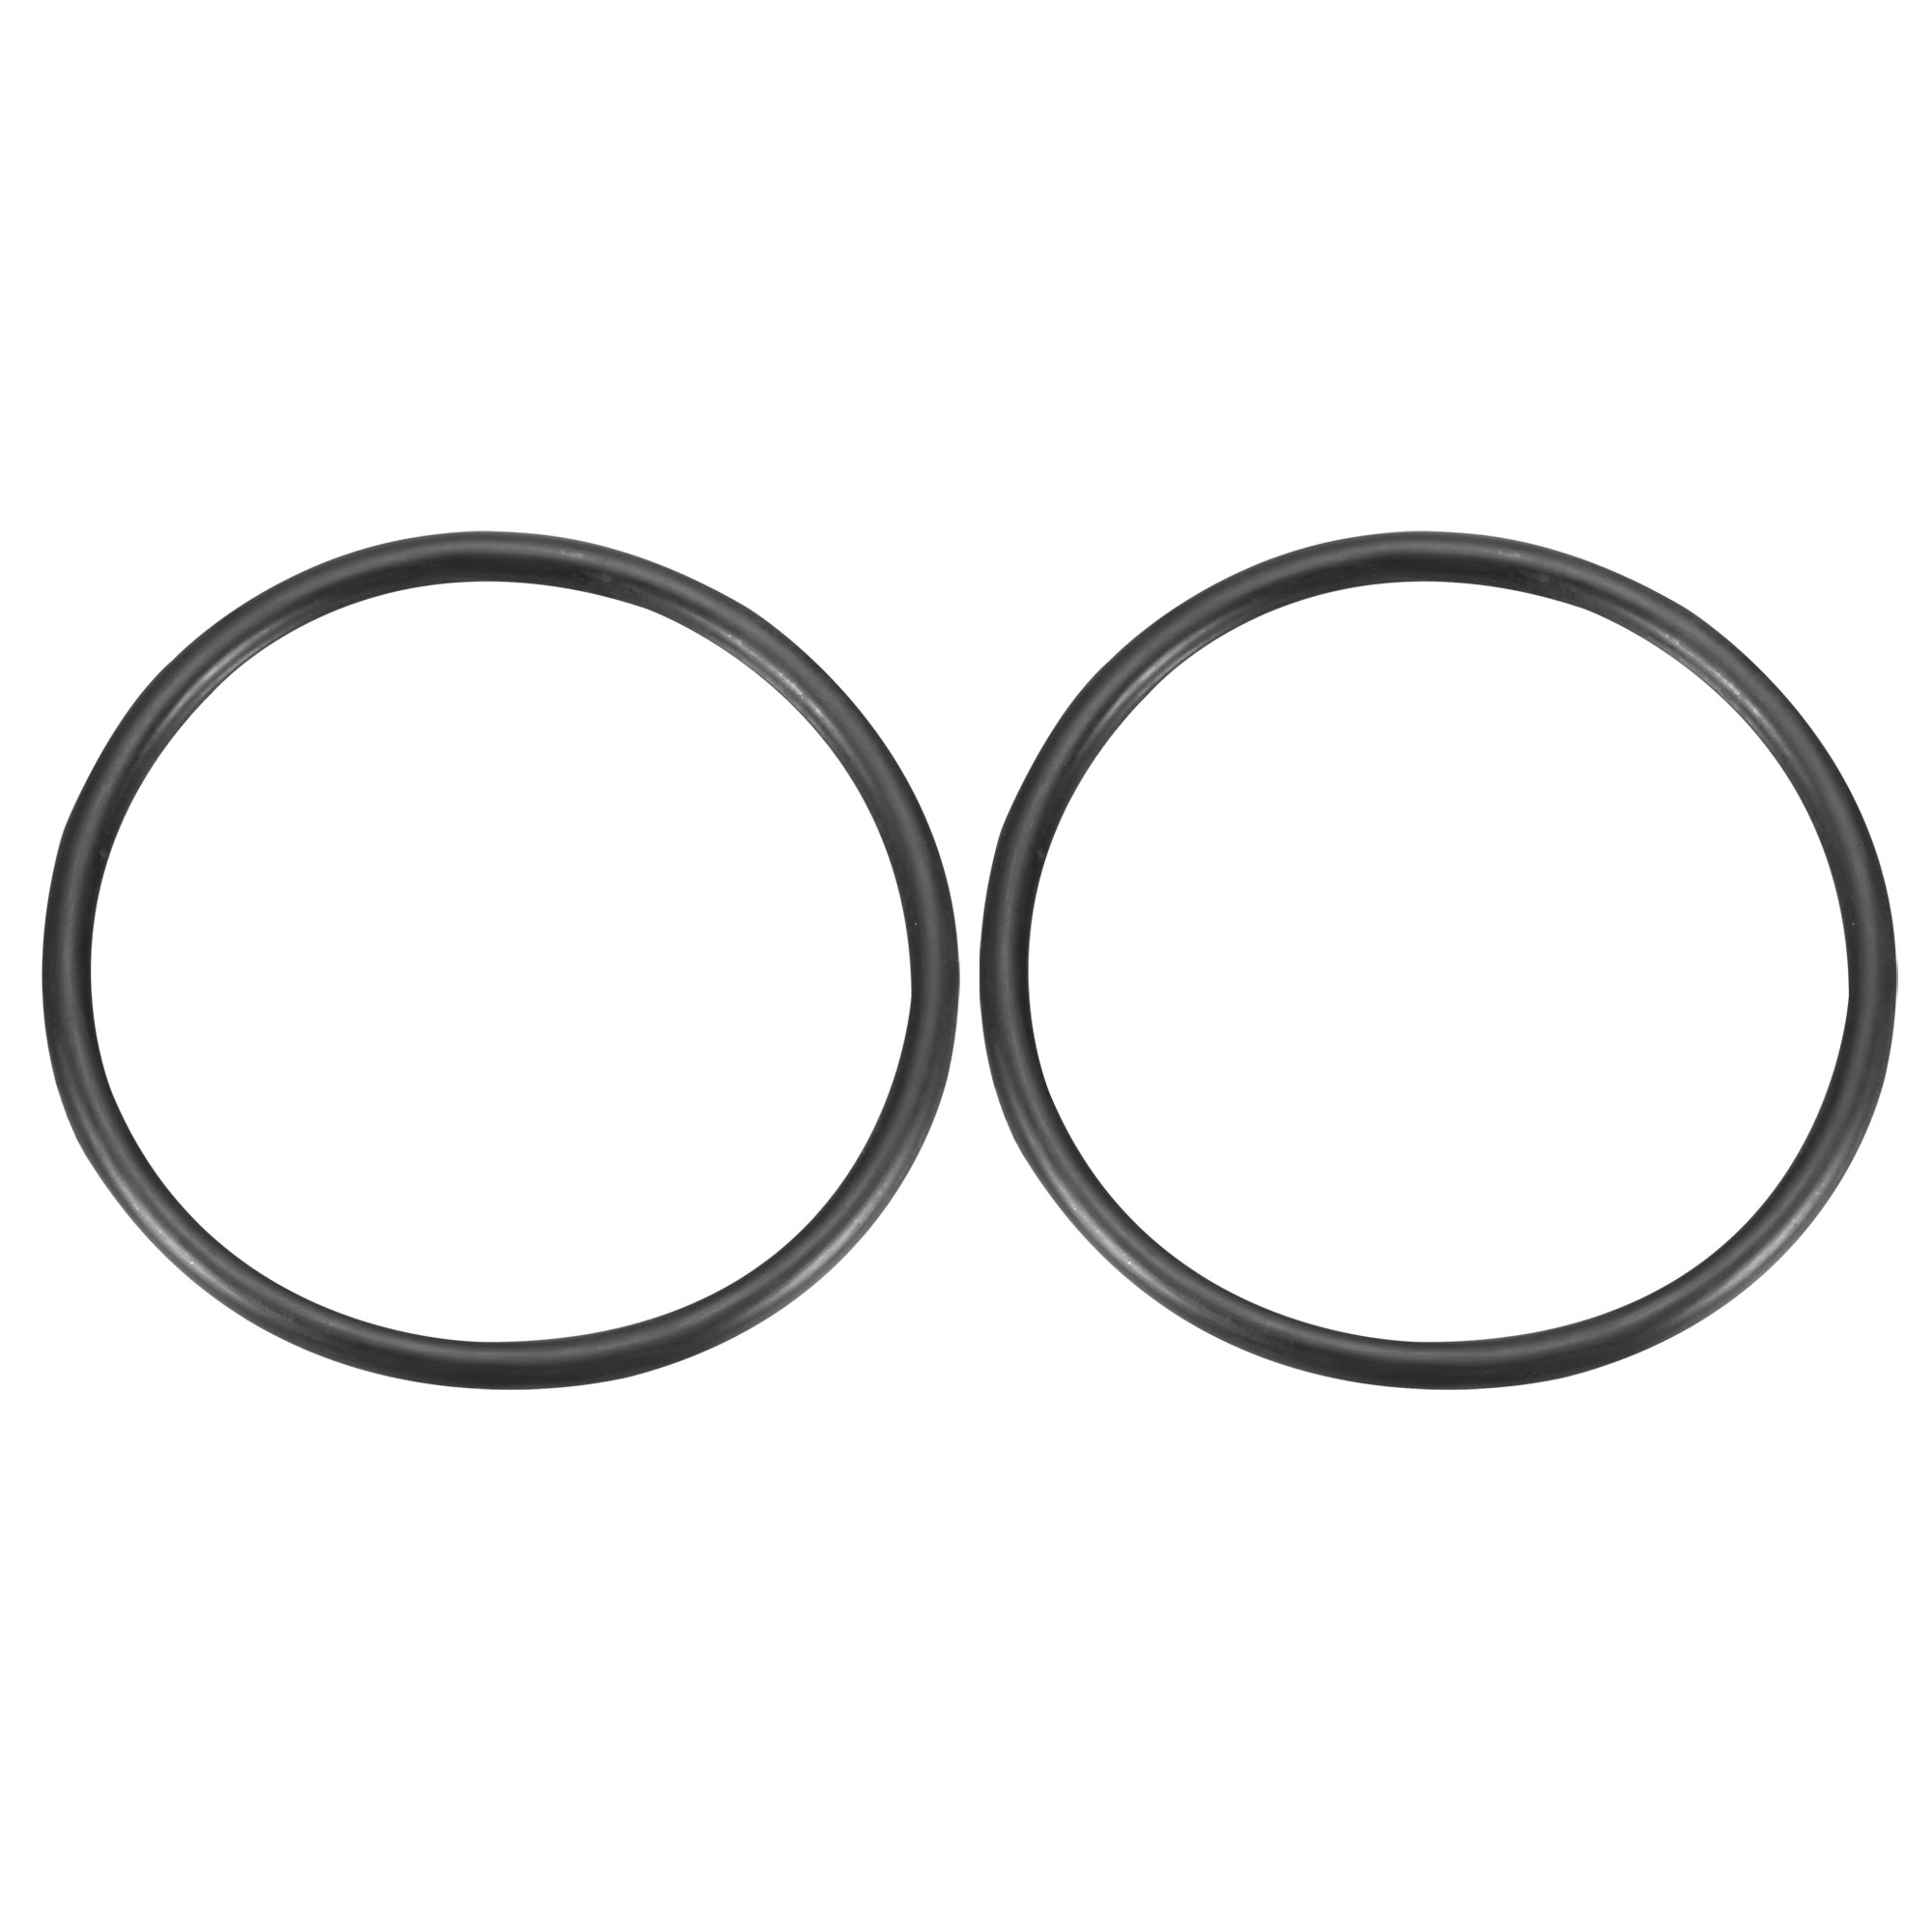 2Pcs Black Universal O-Ring 145mm x 8.6mm BUNA-N Material Oil Seal Washers Grommets